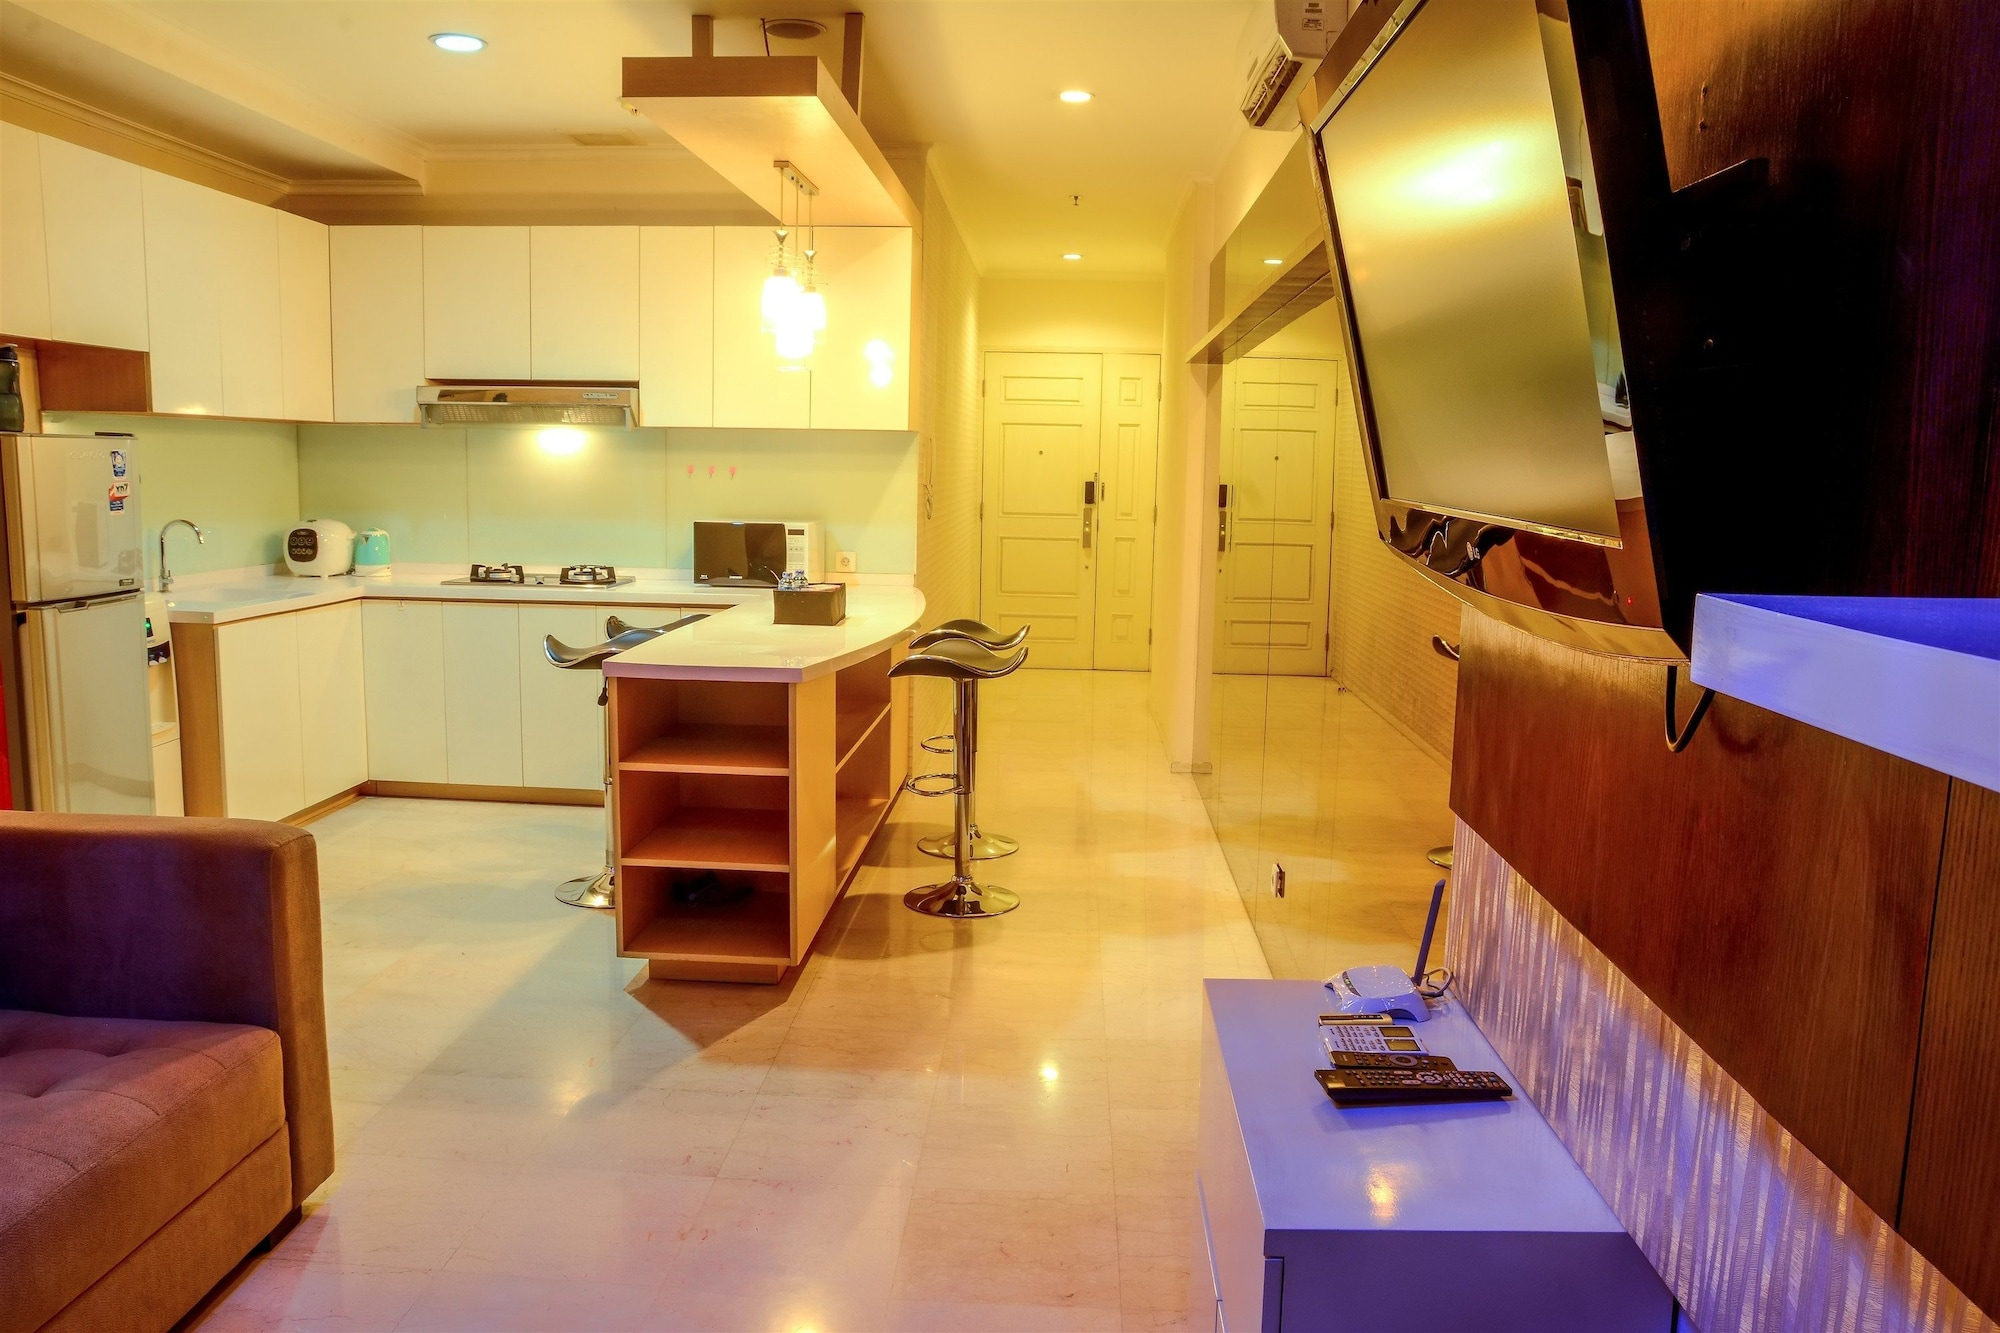 2 Bedrooms Apartment at FX Residence by Travelio, Jakarta Pusat